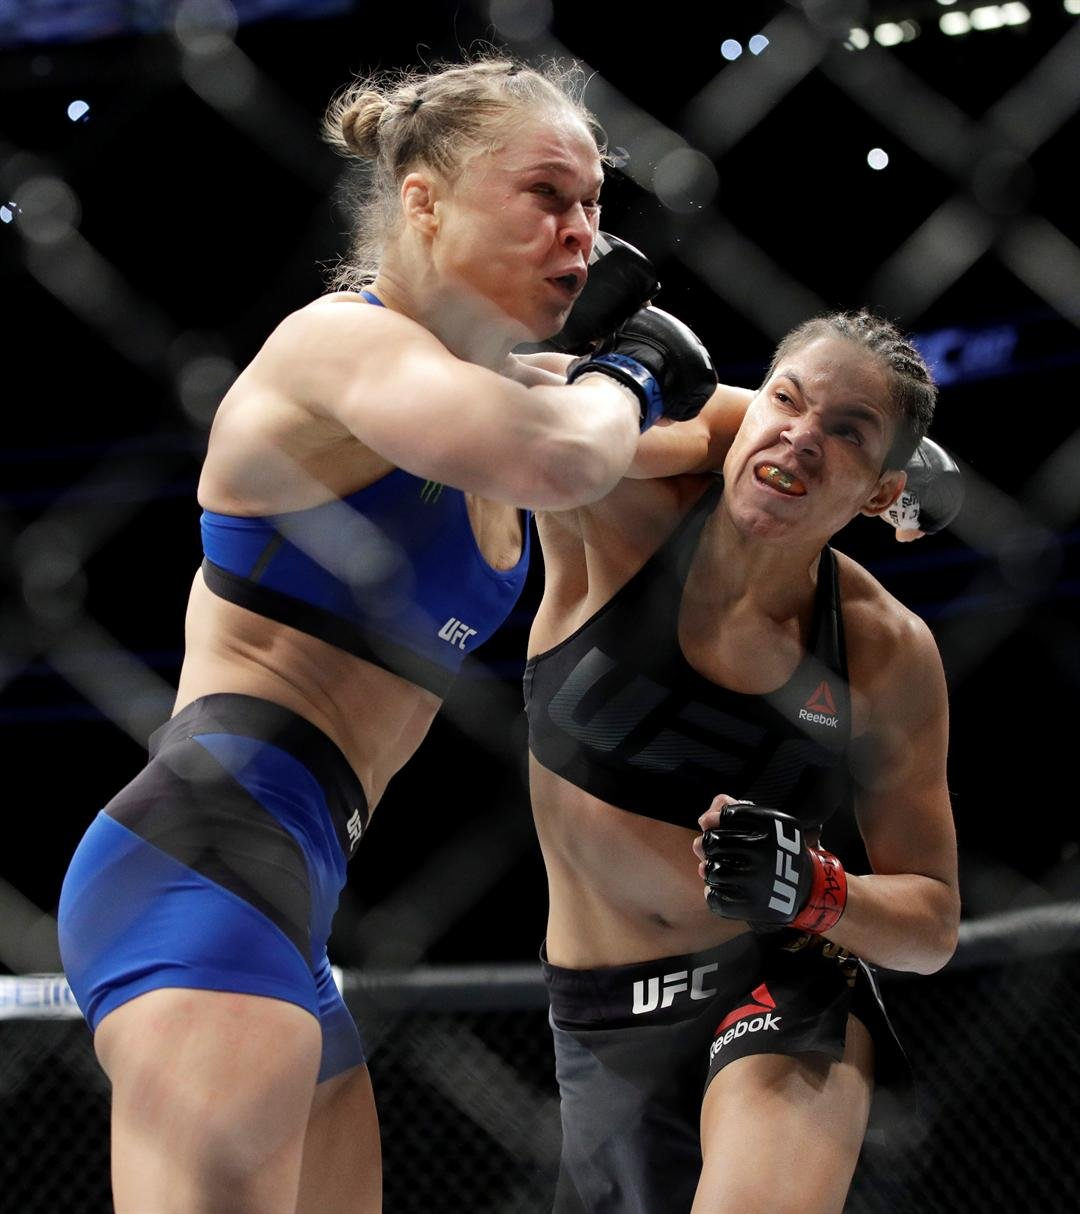 Amanda Nunes, right, connects with Ronda Rousey during the first round of their women's bantamweight championship mixed martial arts bout at UFC 207, Friday, Dec. 30, 2016, in Las Vegas. Nunes won the fight after it was stopped in the first round. (AP Pho